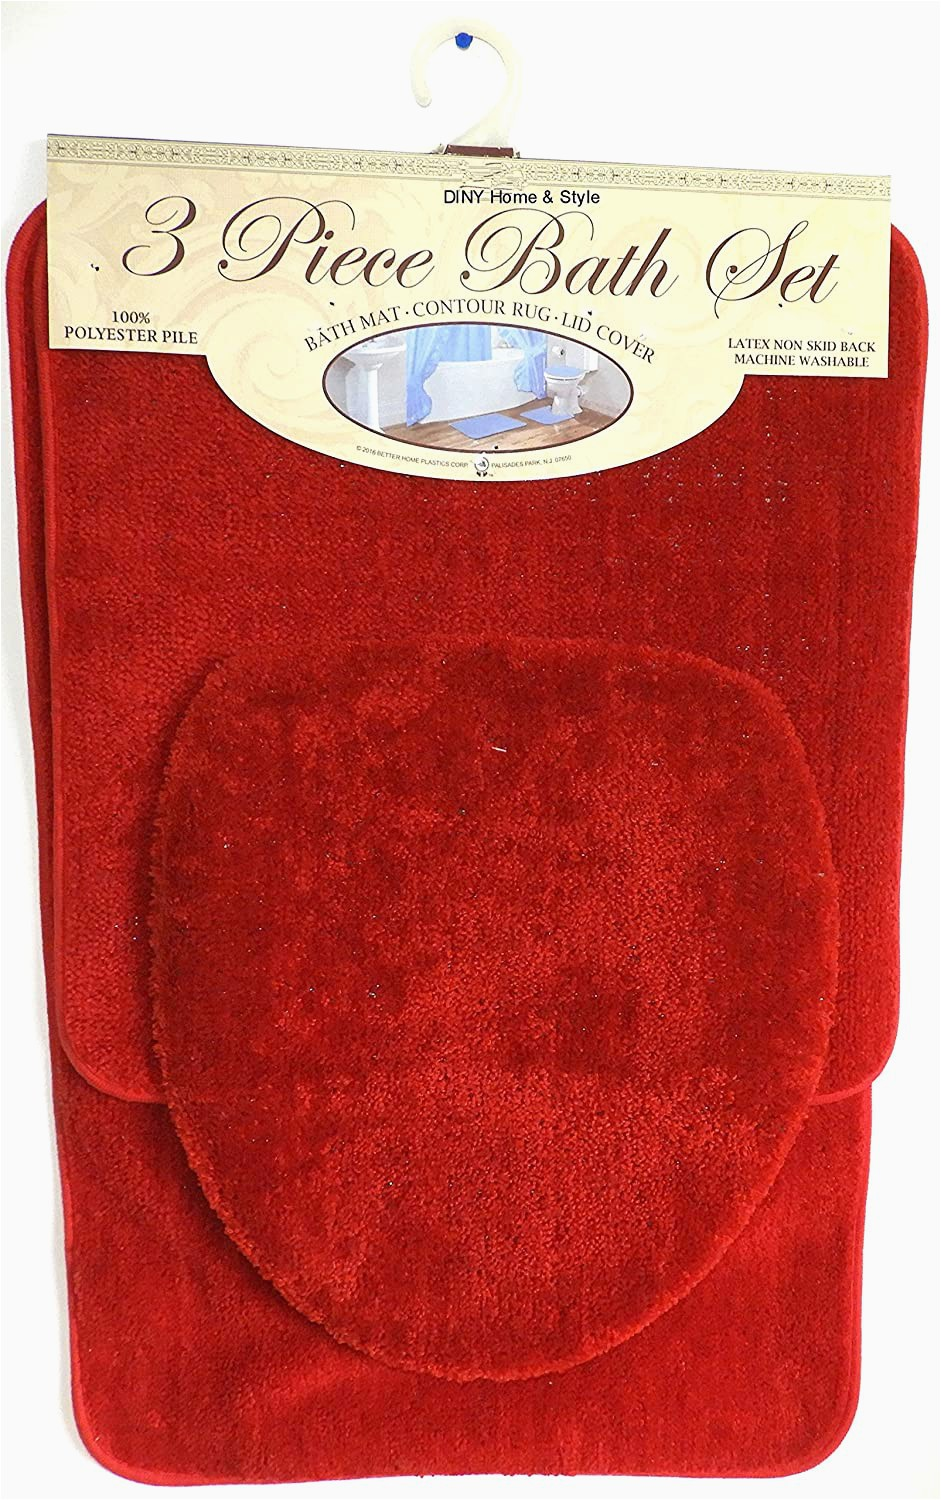 Red Bath Rug Set Buy Diny Home & Style 3 Piece Bath Rug Set Brick Red